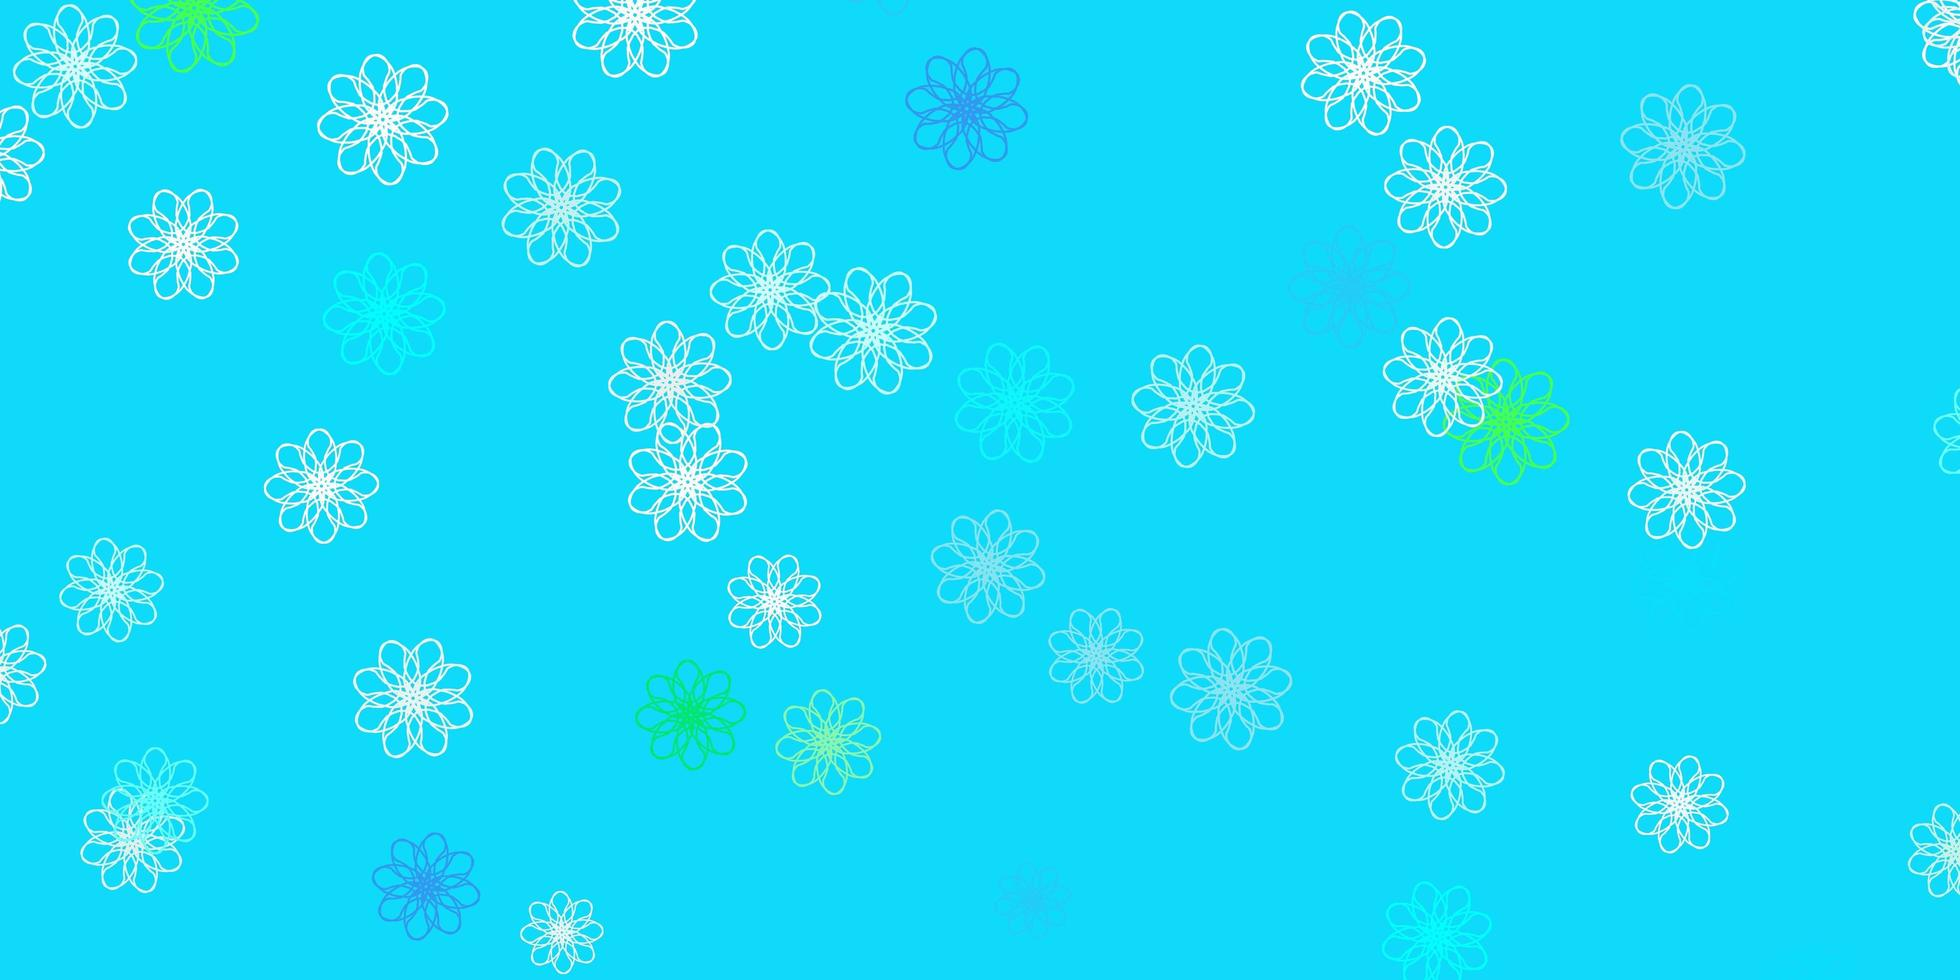 Light Blue, Green vector doodle pattern with flowers.